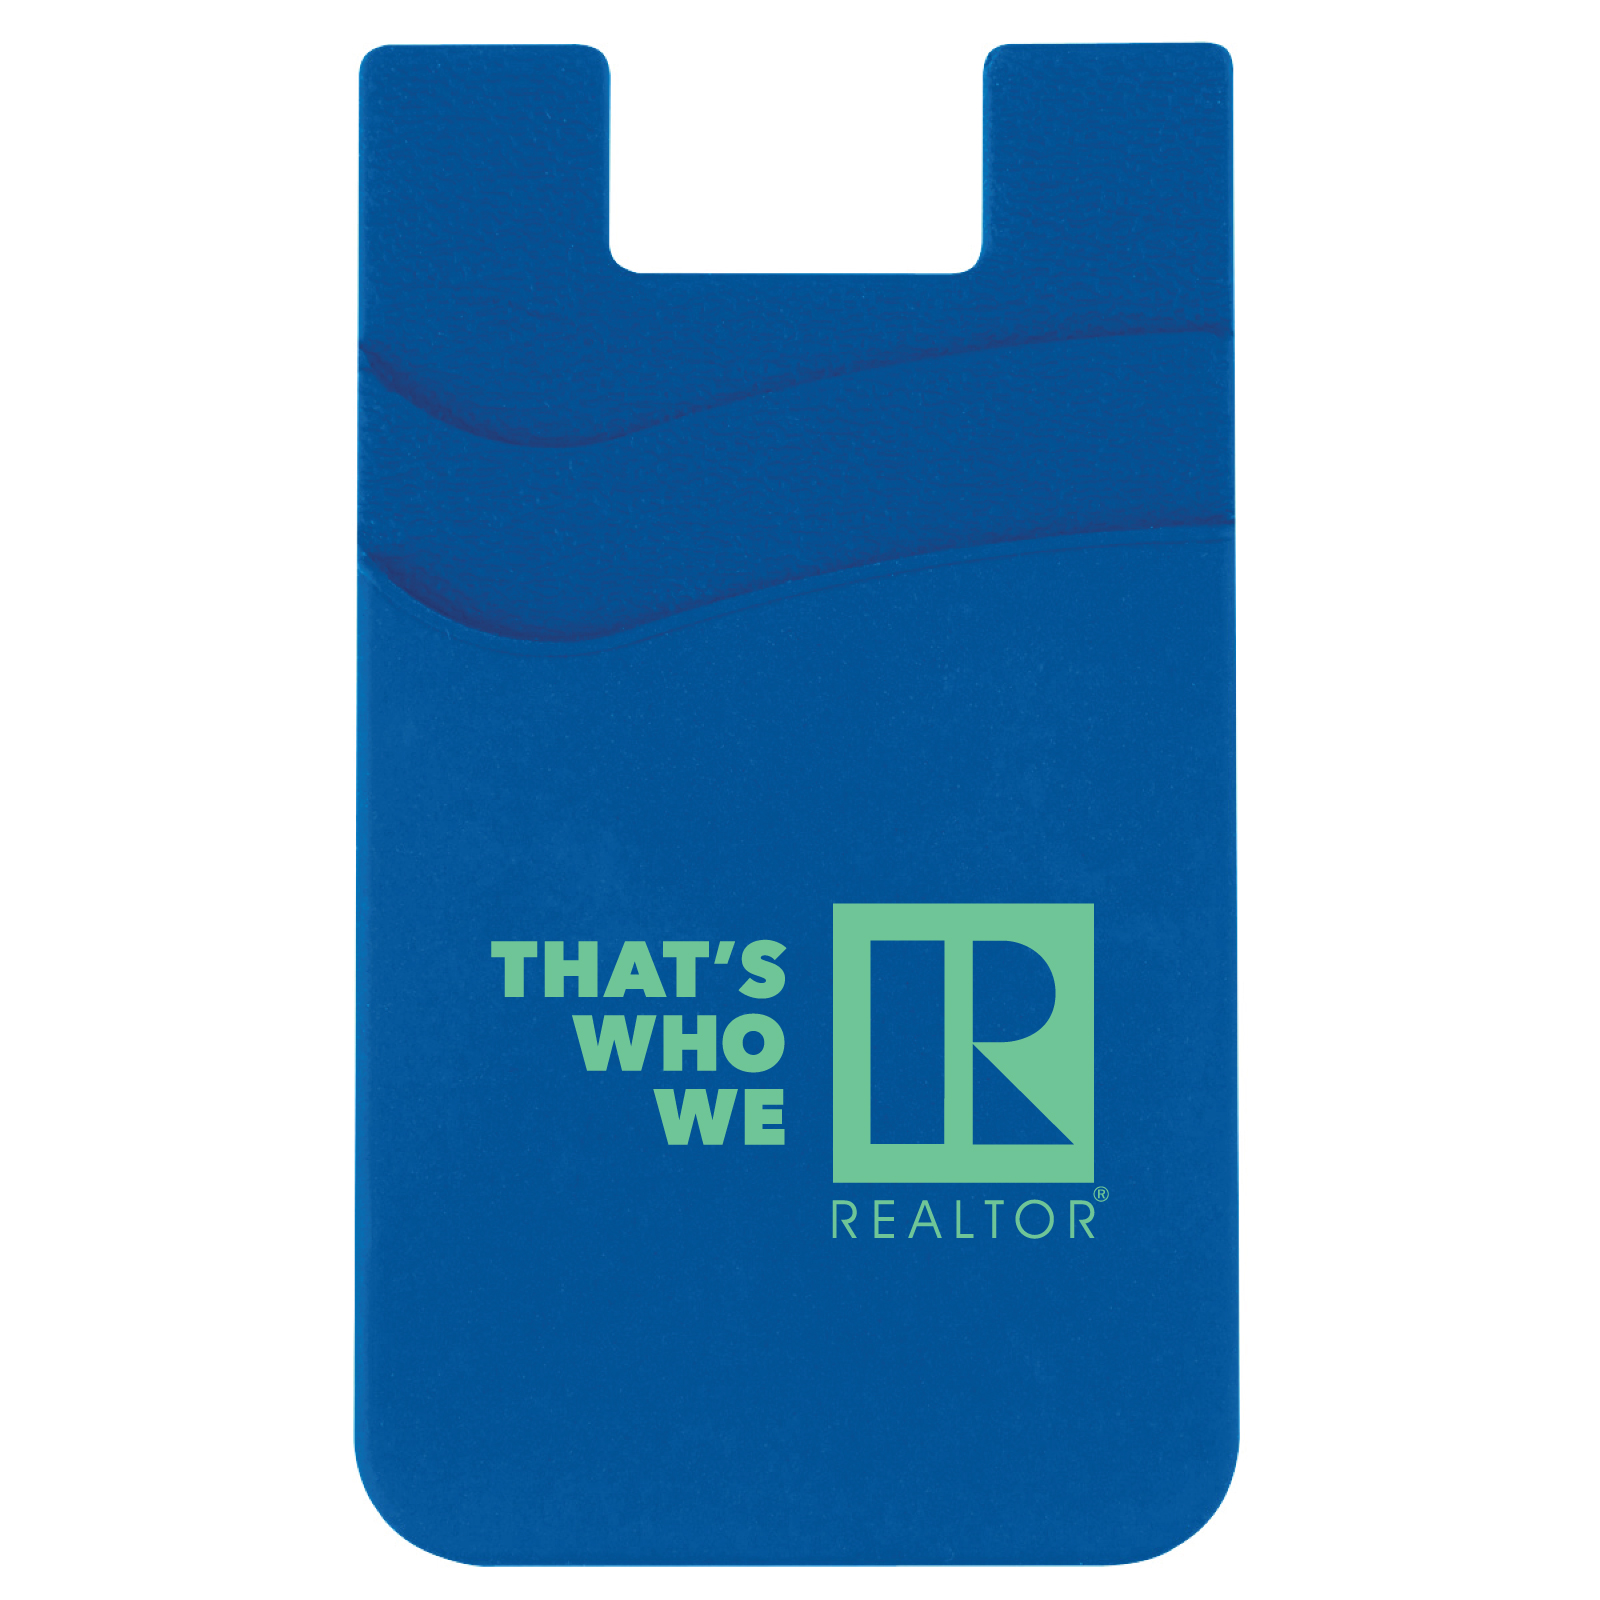 """Thats Who We R"" Cell Phone Card Wallet silicone,silicon,twwr,ThatsWhoWeR,Thats,TWWR,ThatWho,ThatsWho,Twwr,Thats,Whos,We,Ares,Cards,Wallets,Holders,Cells,Phones,Techs,Business,Credits,iPhones"